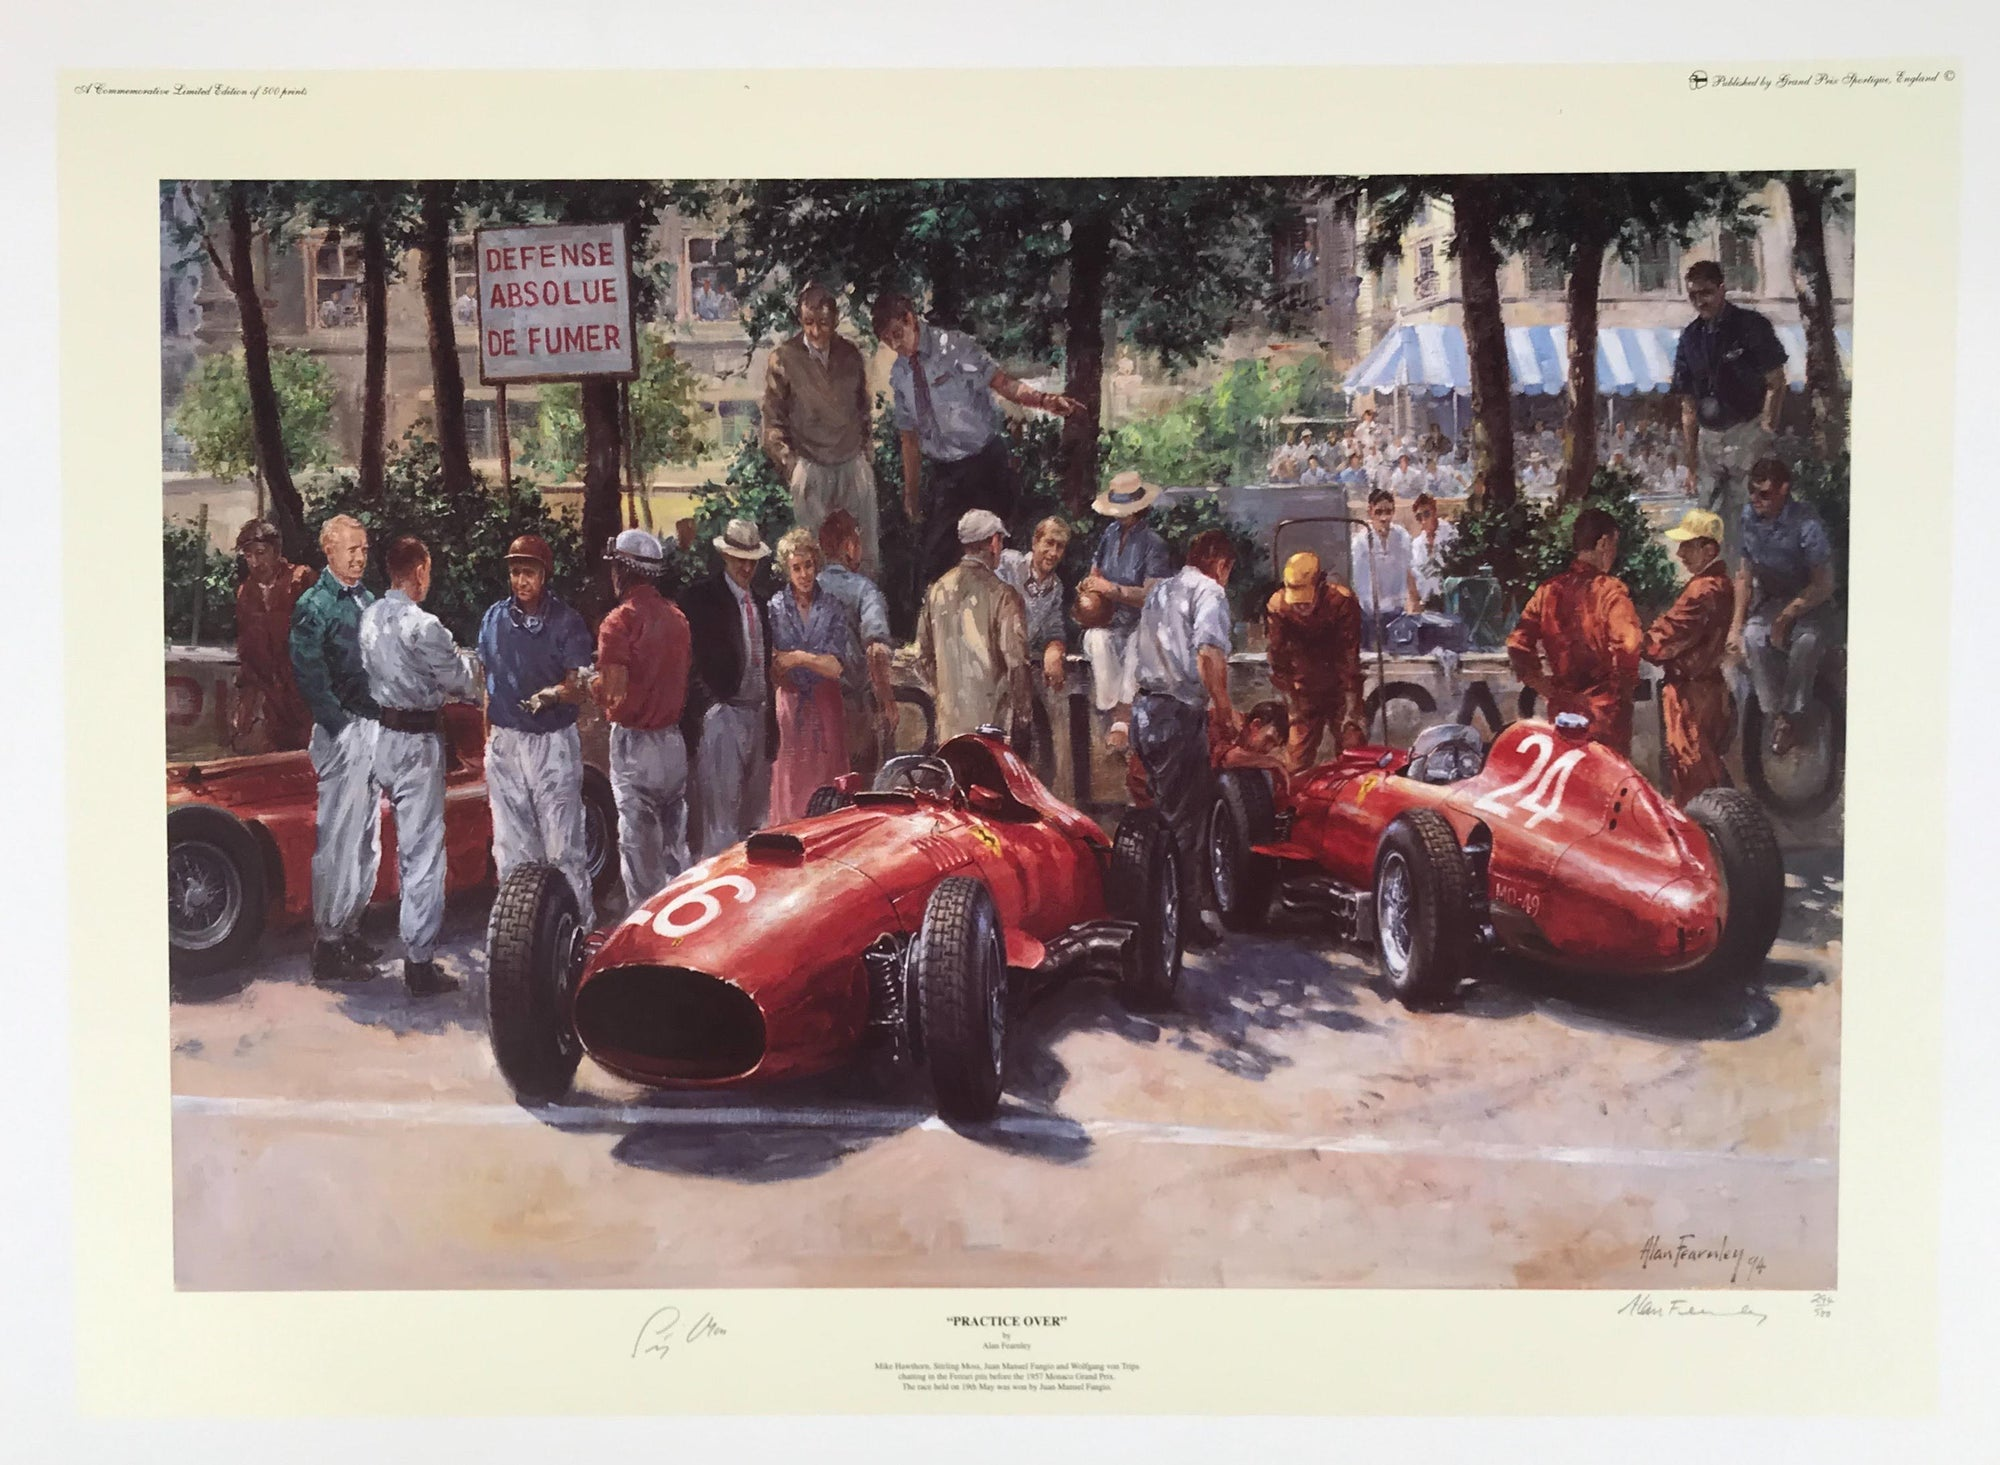 Practice Over print by Alan Fearnley Autographed by Stirling Moss - $295.00